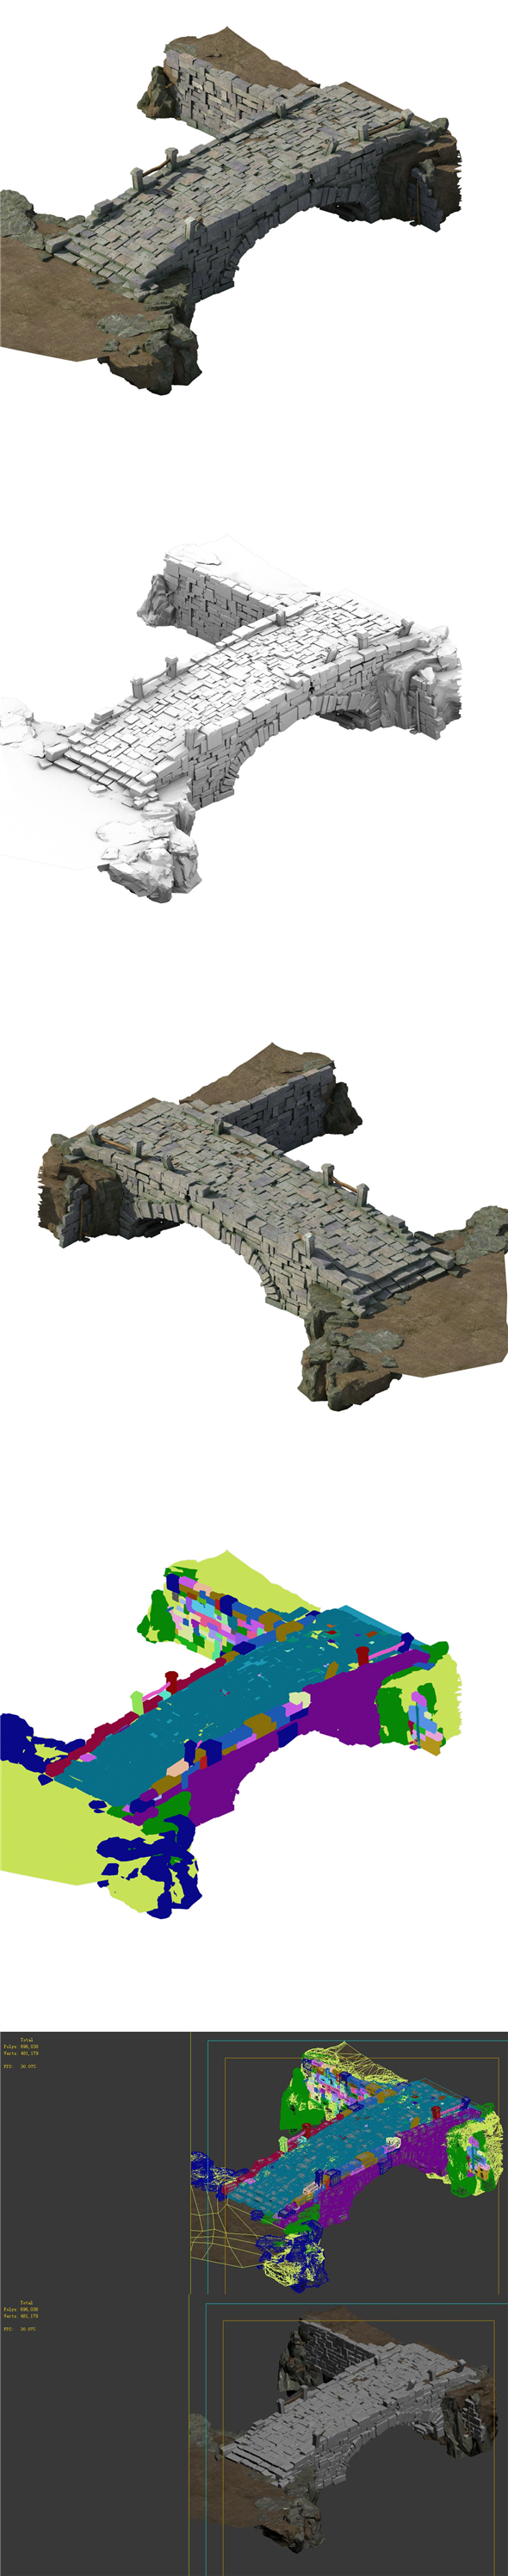 Village - stone bridge - 3DOcean Item for Sale